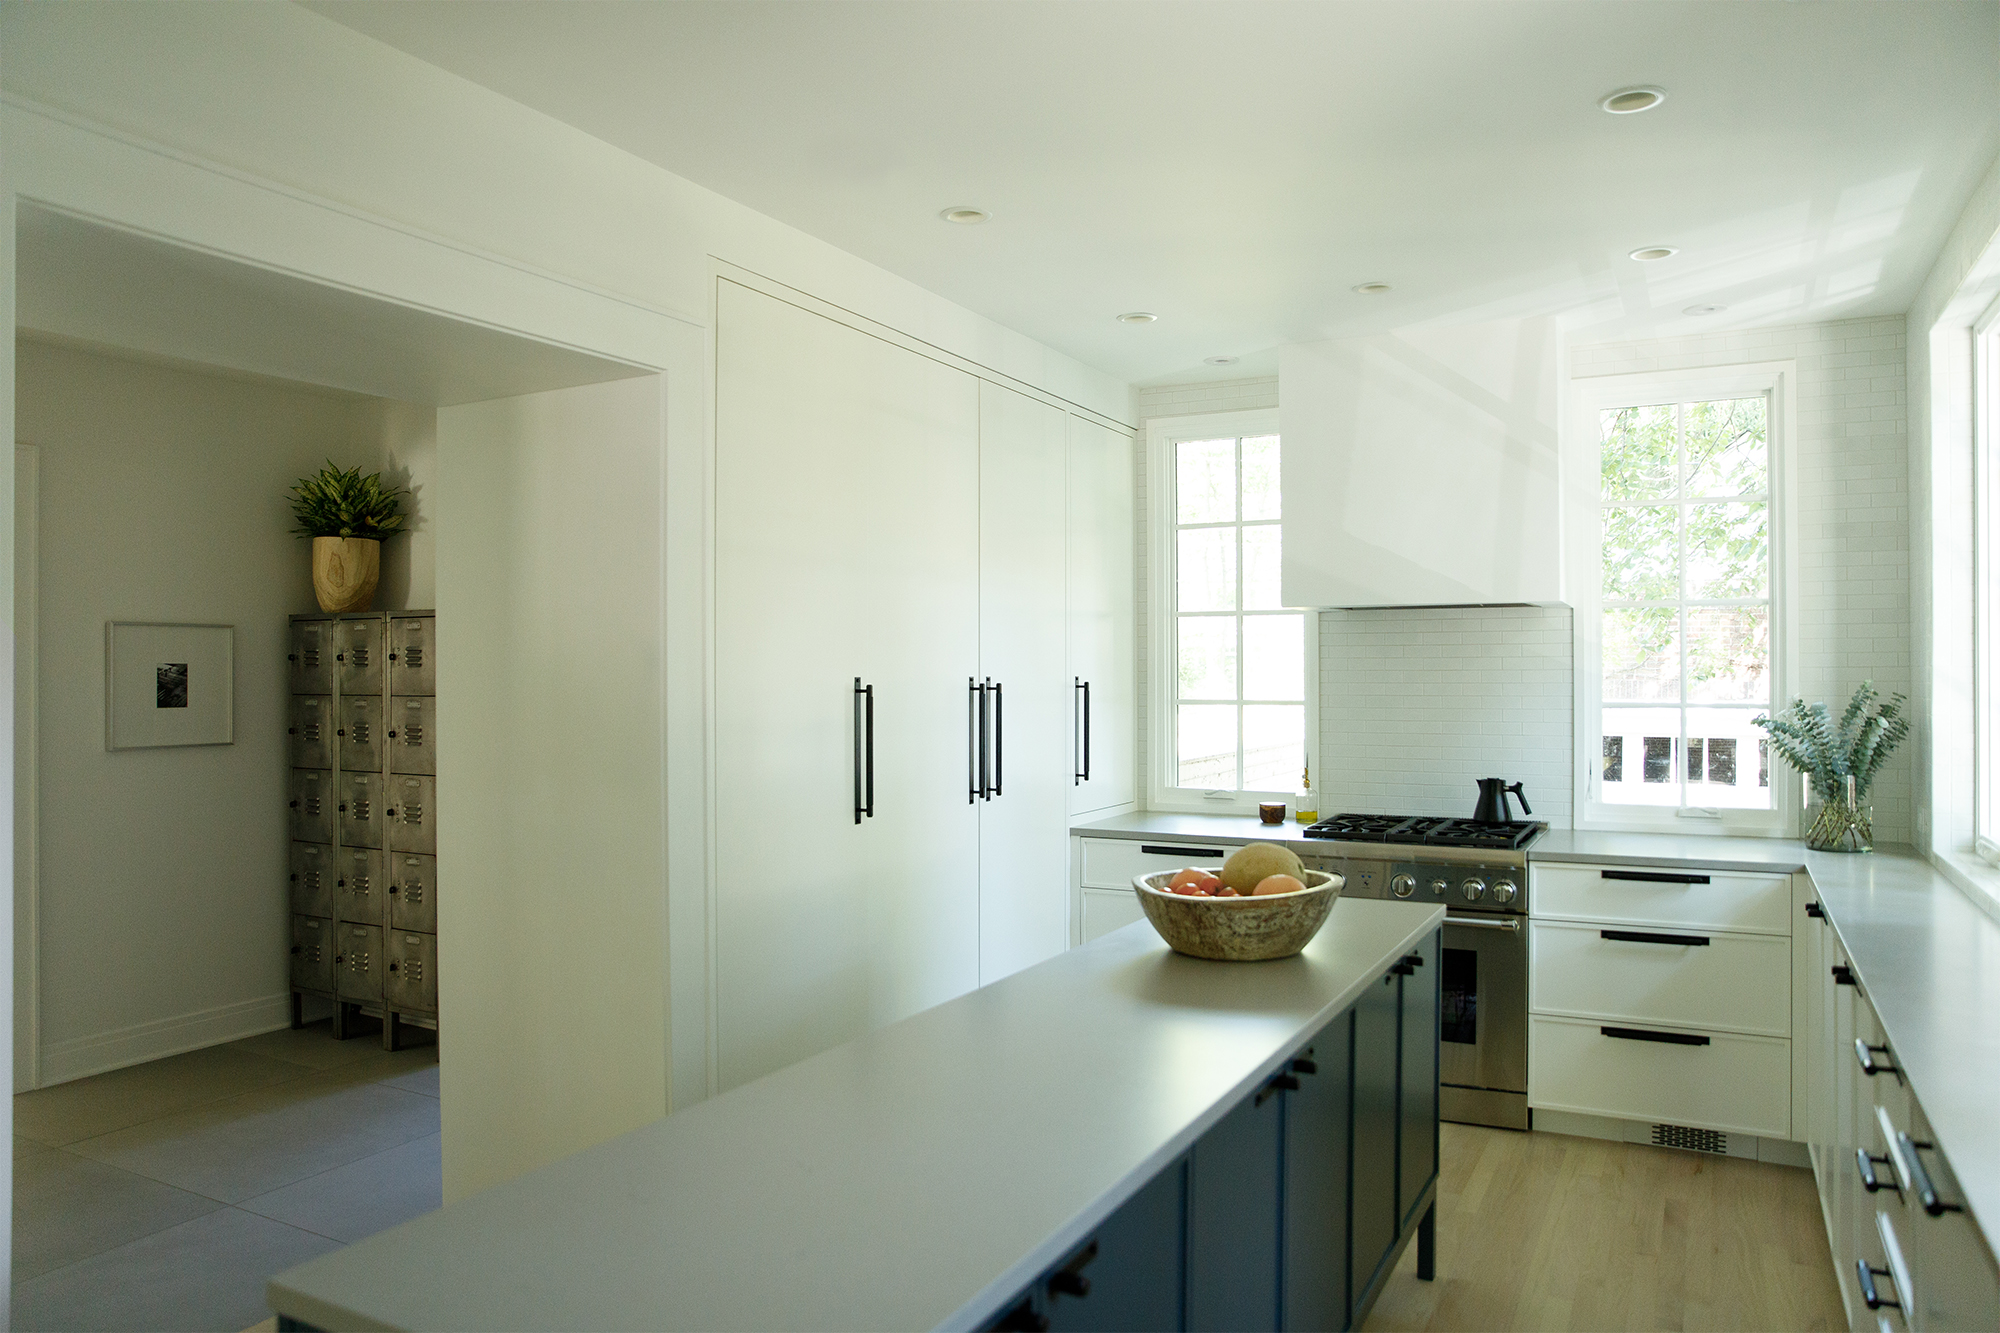 debaun studio_Beechwood_Kitchen 1.jpg